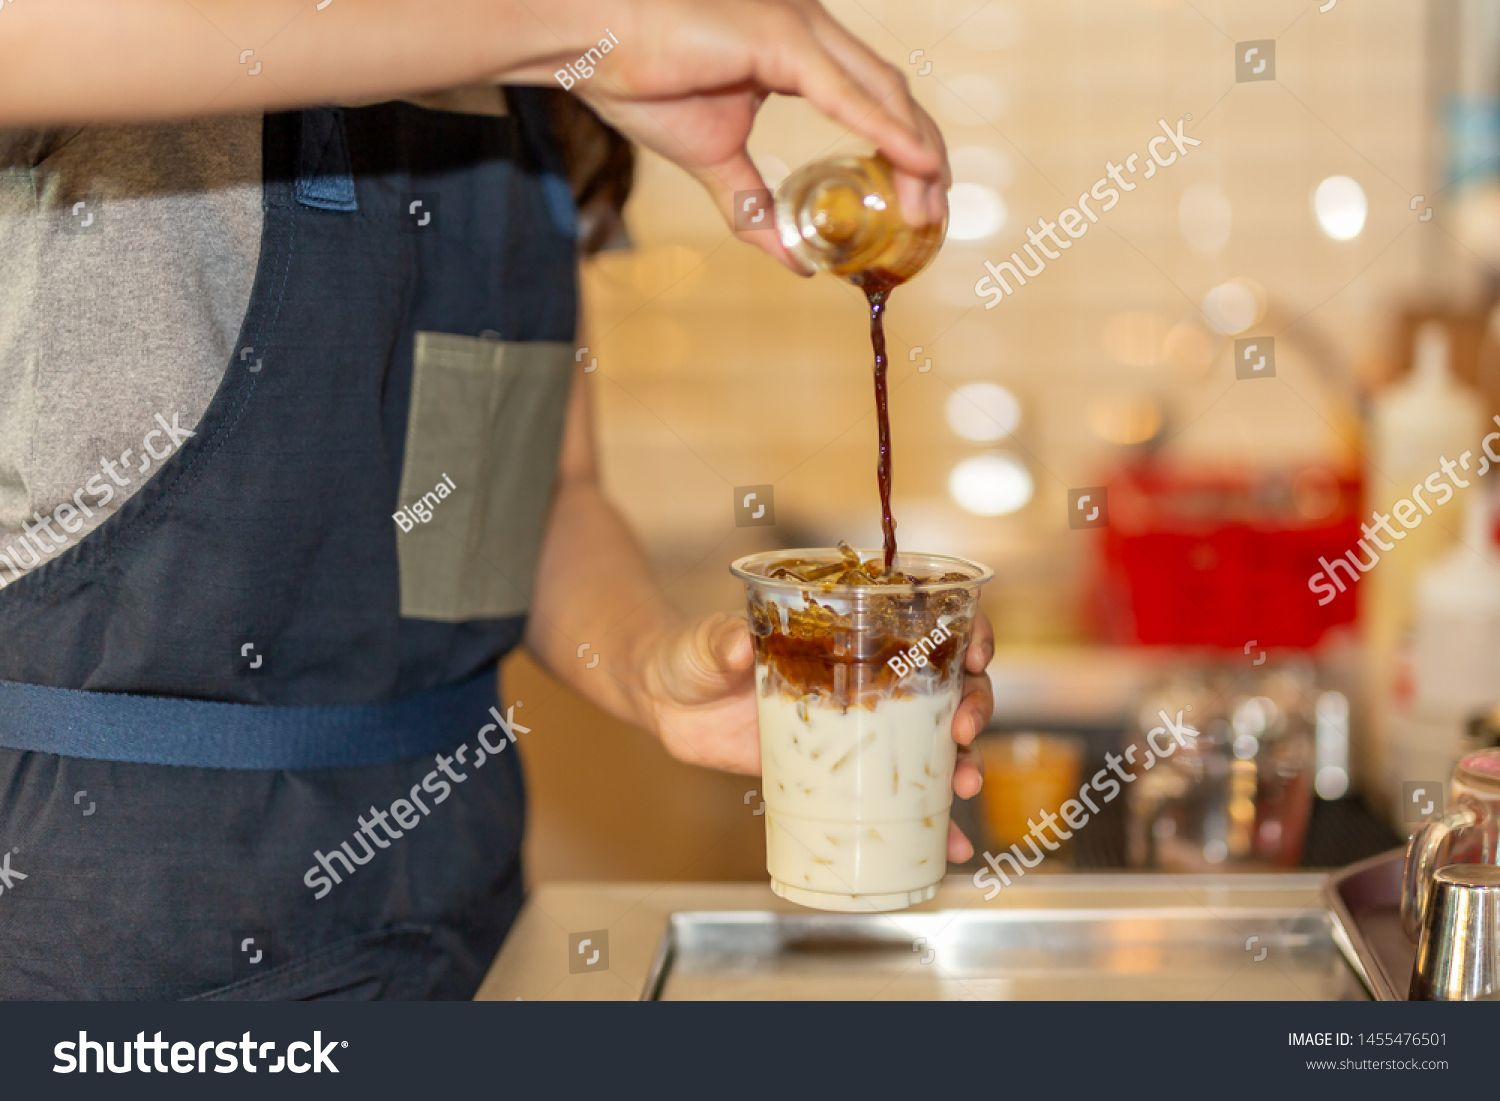 Barista pouring coffee to takeaway cup to making iced coffee latte in the cafe. #Sponsored , #ad, #coffee#takeaway#Barista#pouring